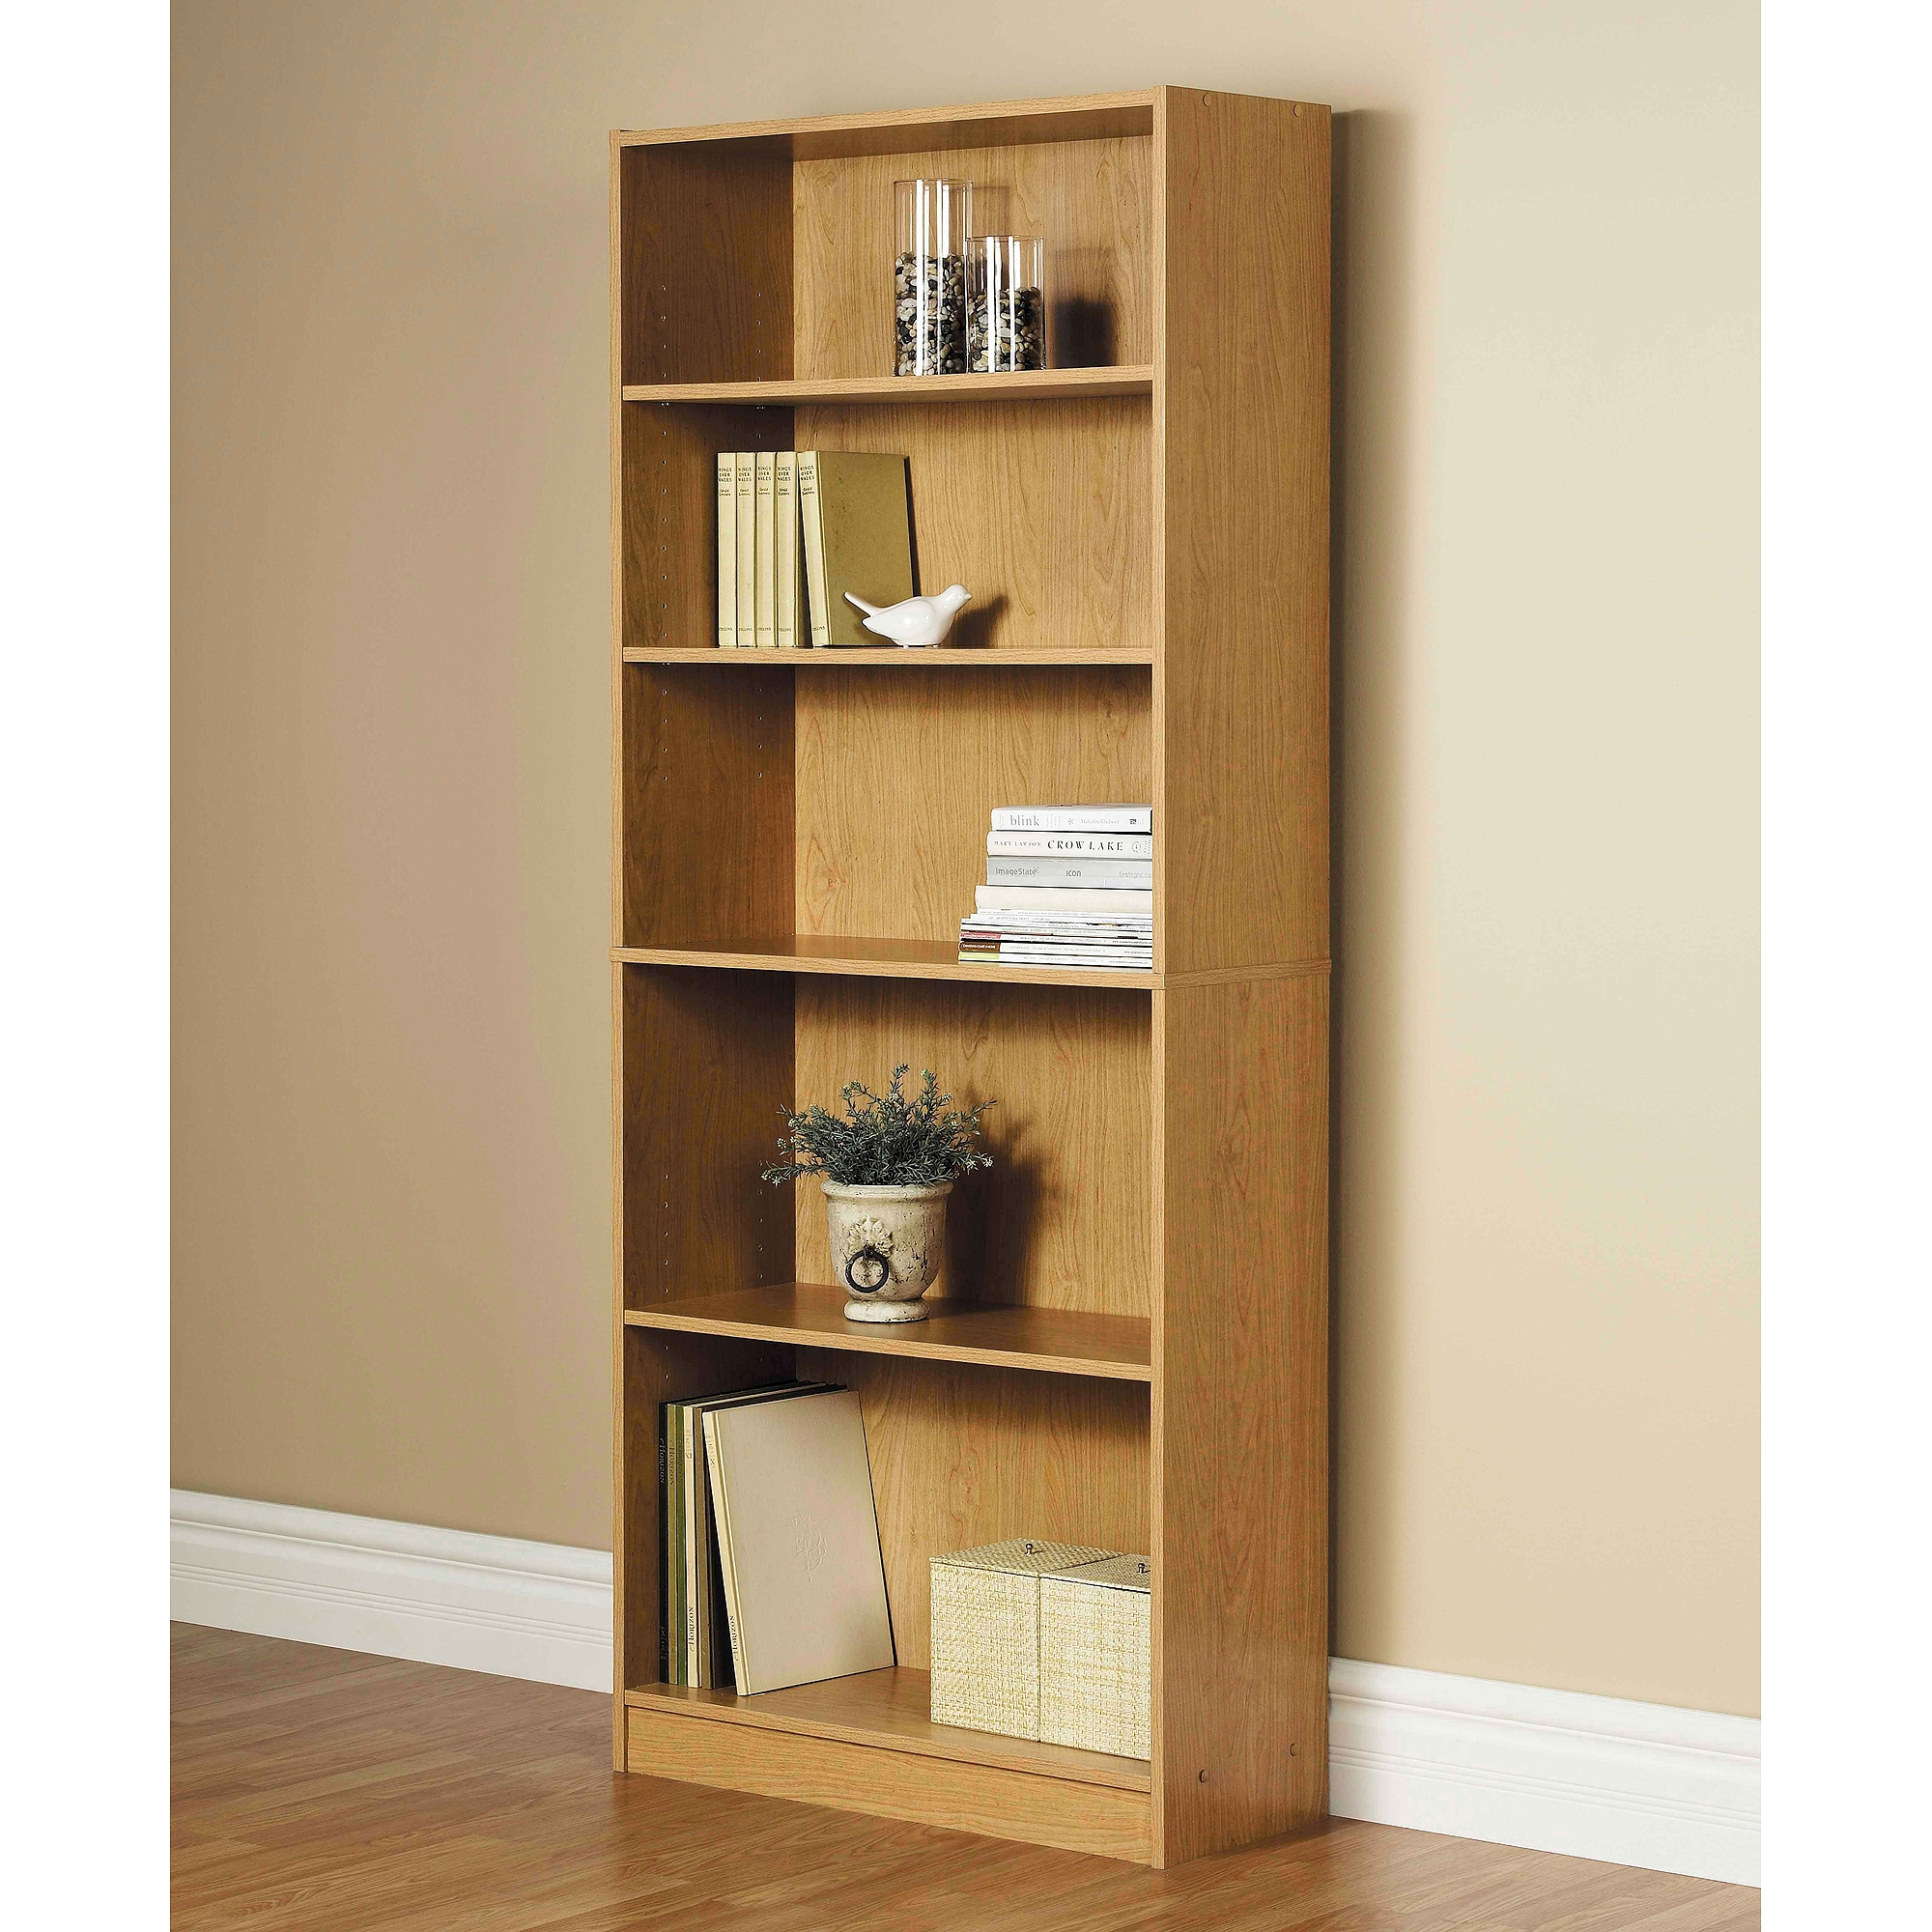 Solid Wood Bookcases Within Solid Wood Bookcases (#12 of 15)